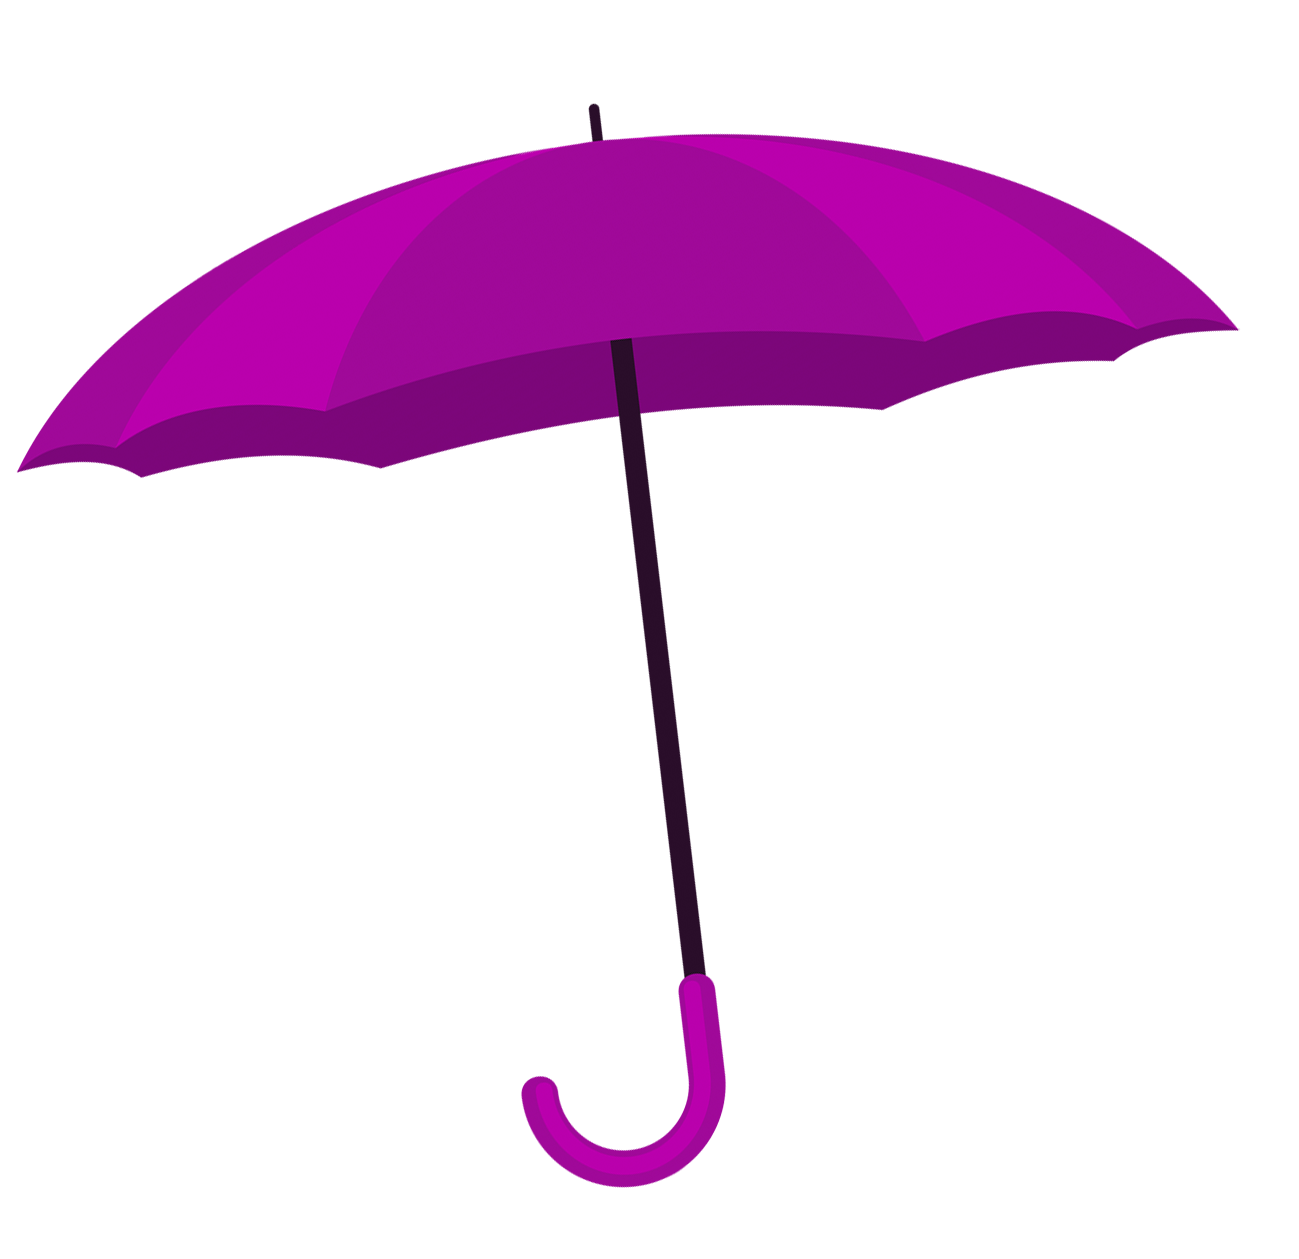 purple umbrella image